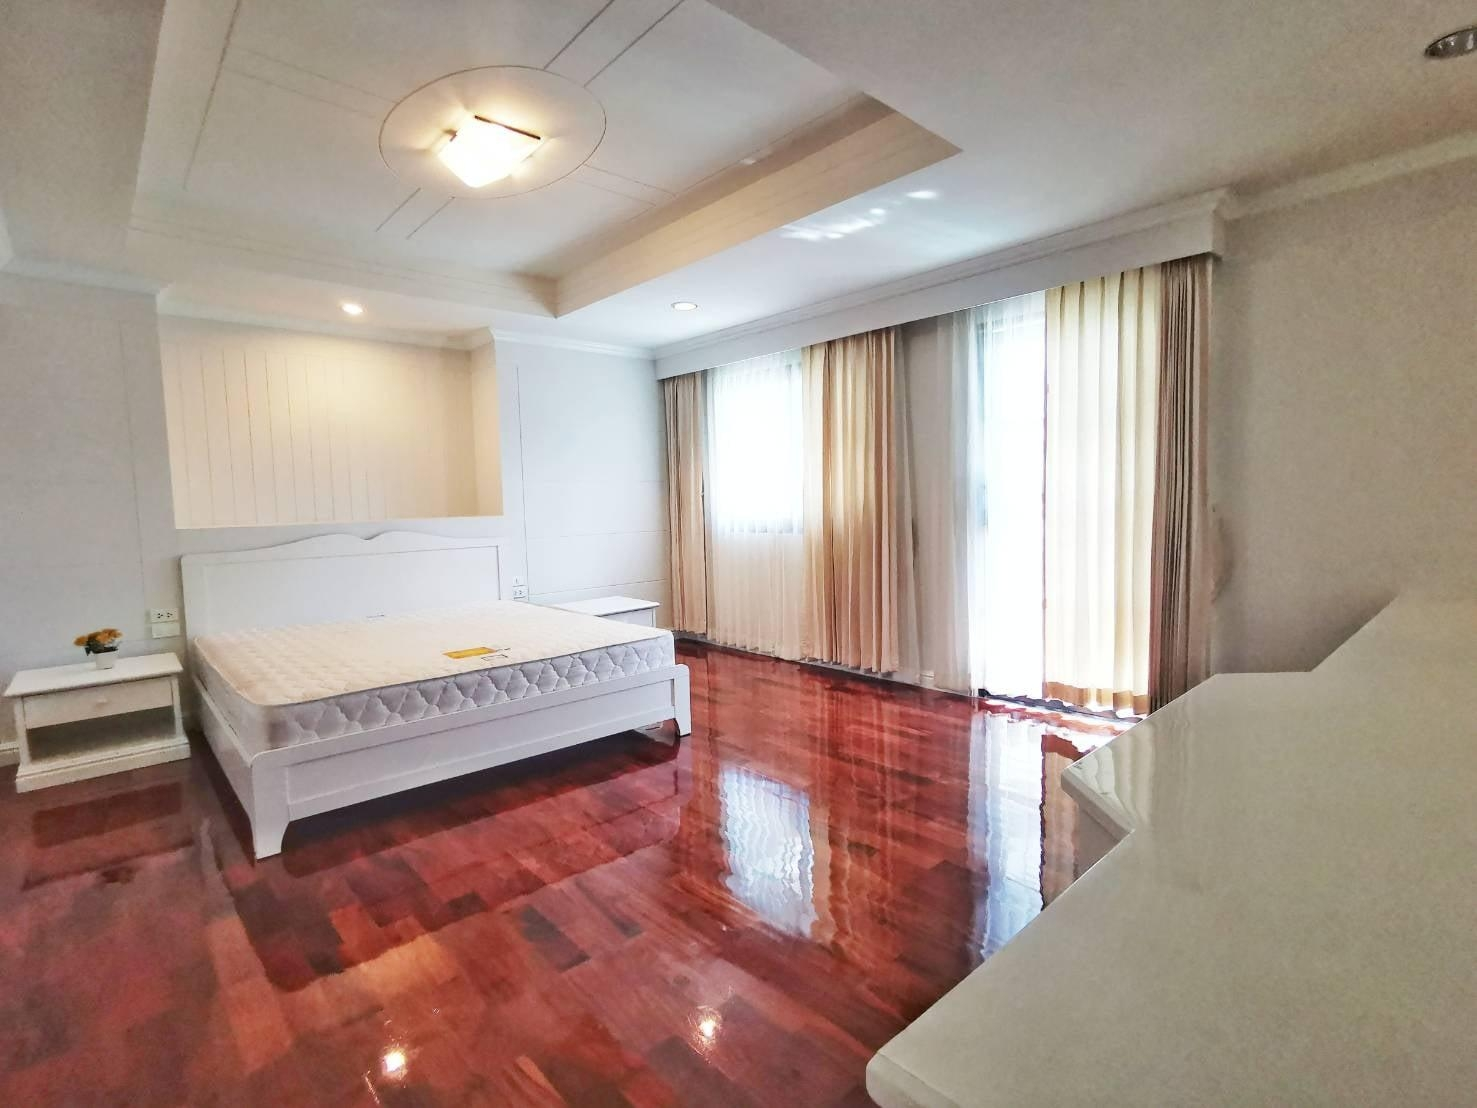 LTH3805 – Pet-Friendly Apartment FOR RENT in Asoke area 3 beds size 250 Sq.M. Nearby BTS Asoke station ONLY 65k/Month